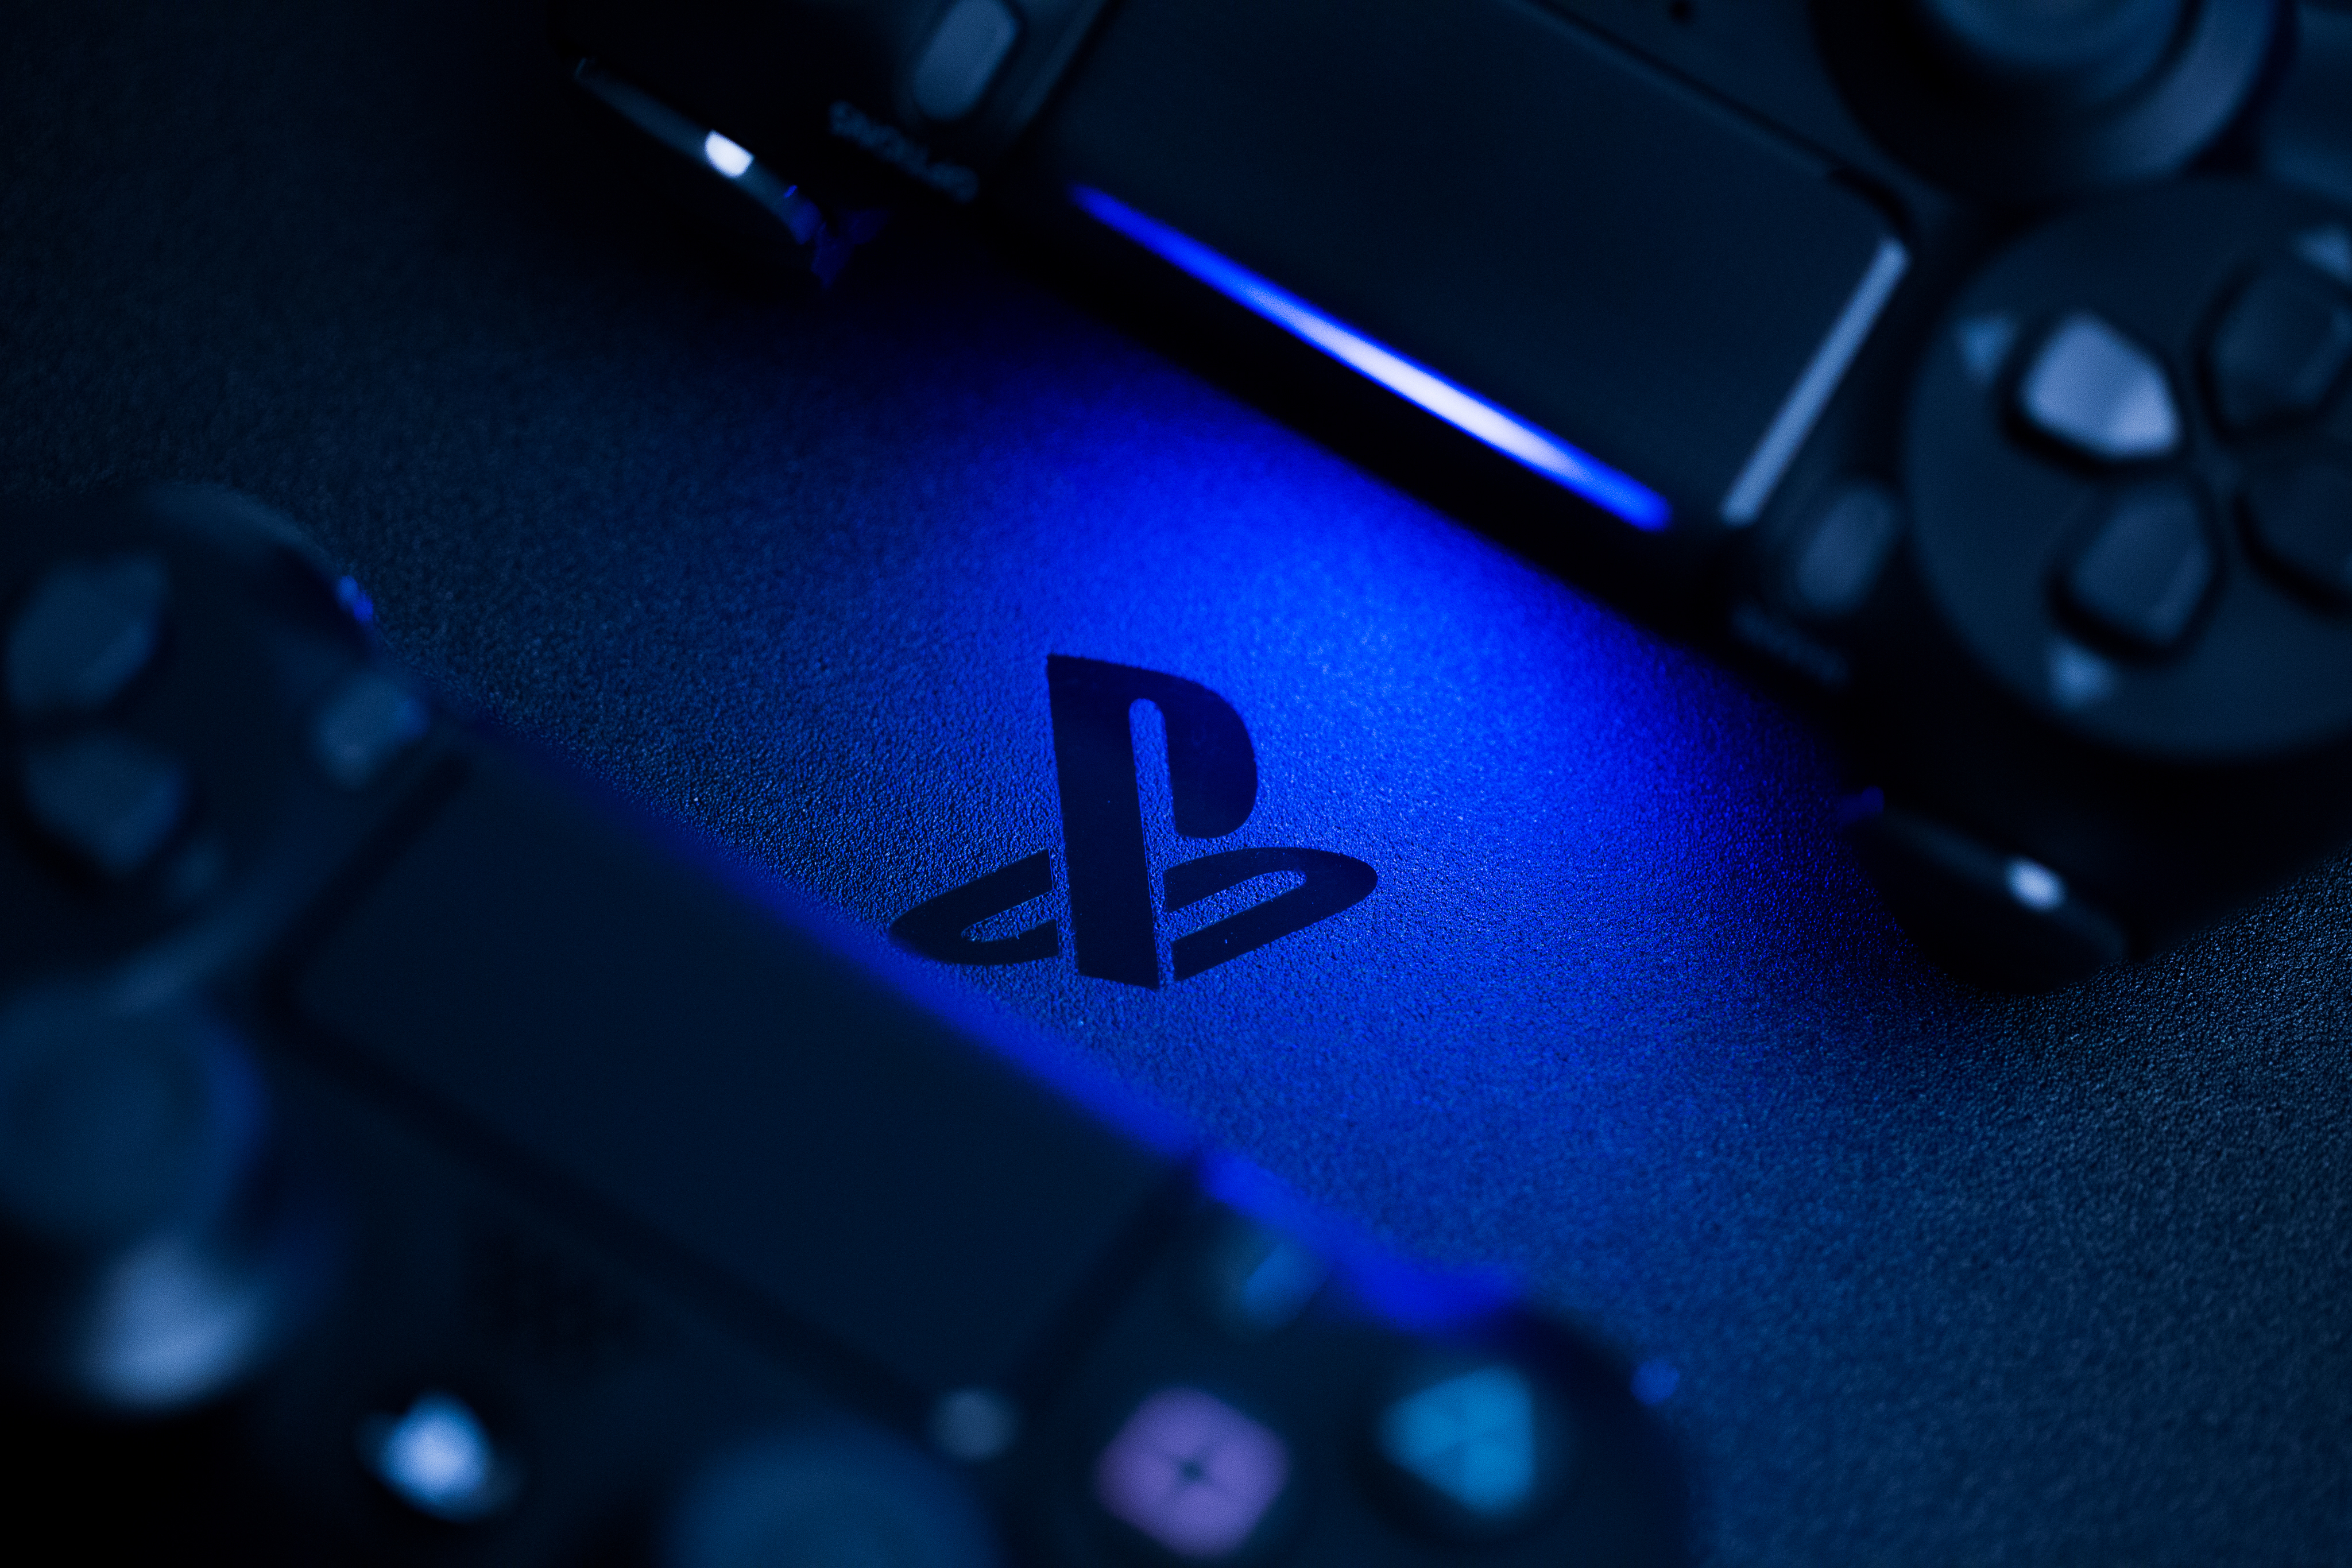 Sony to integrate Discord chat into PlayStation – Engadget